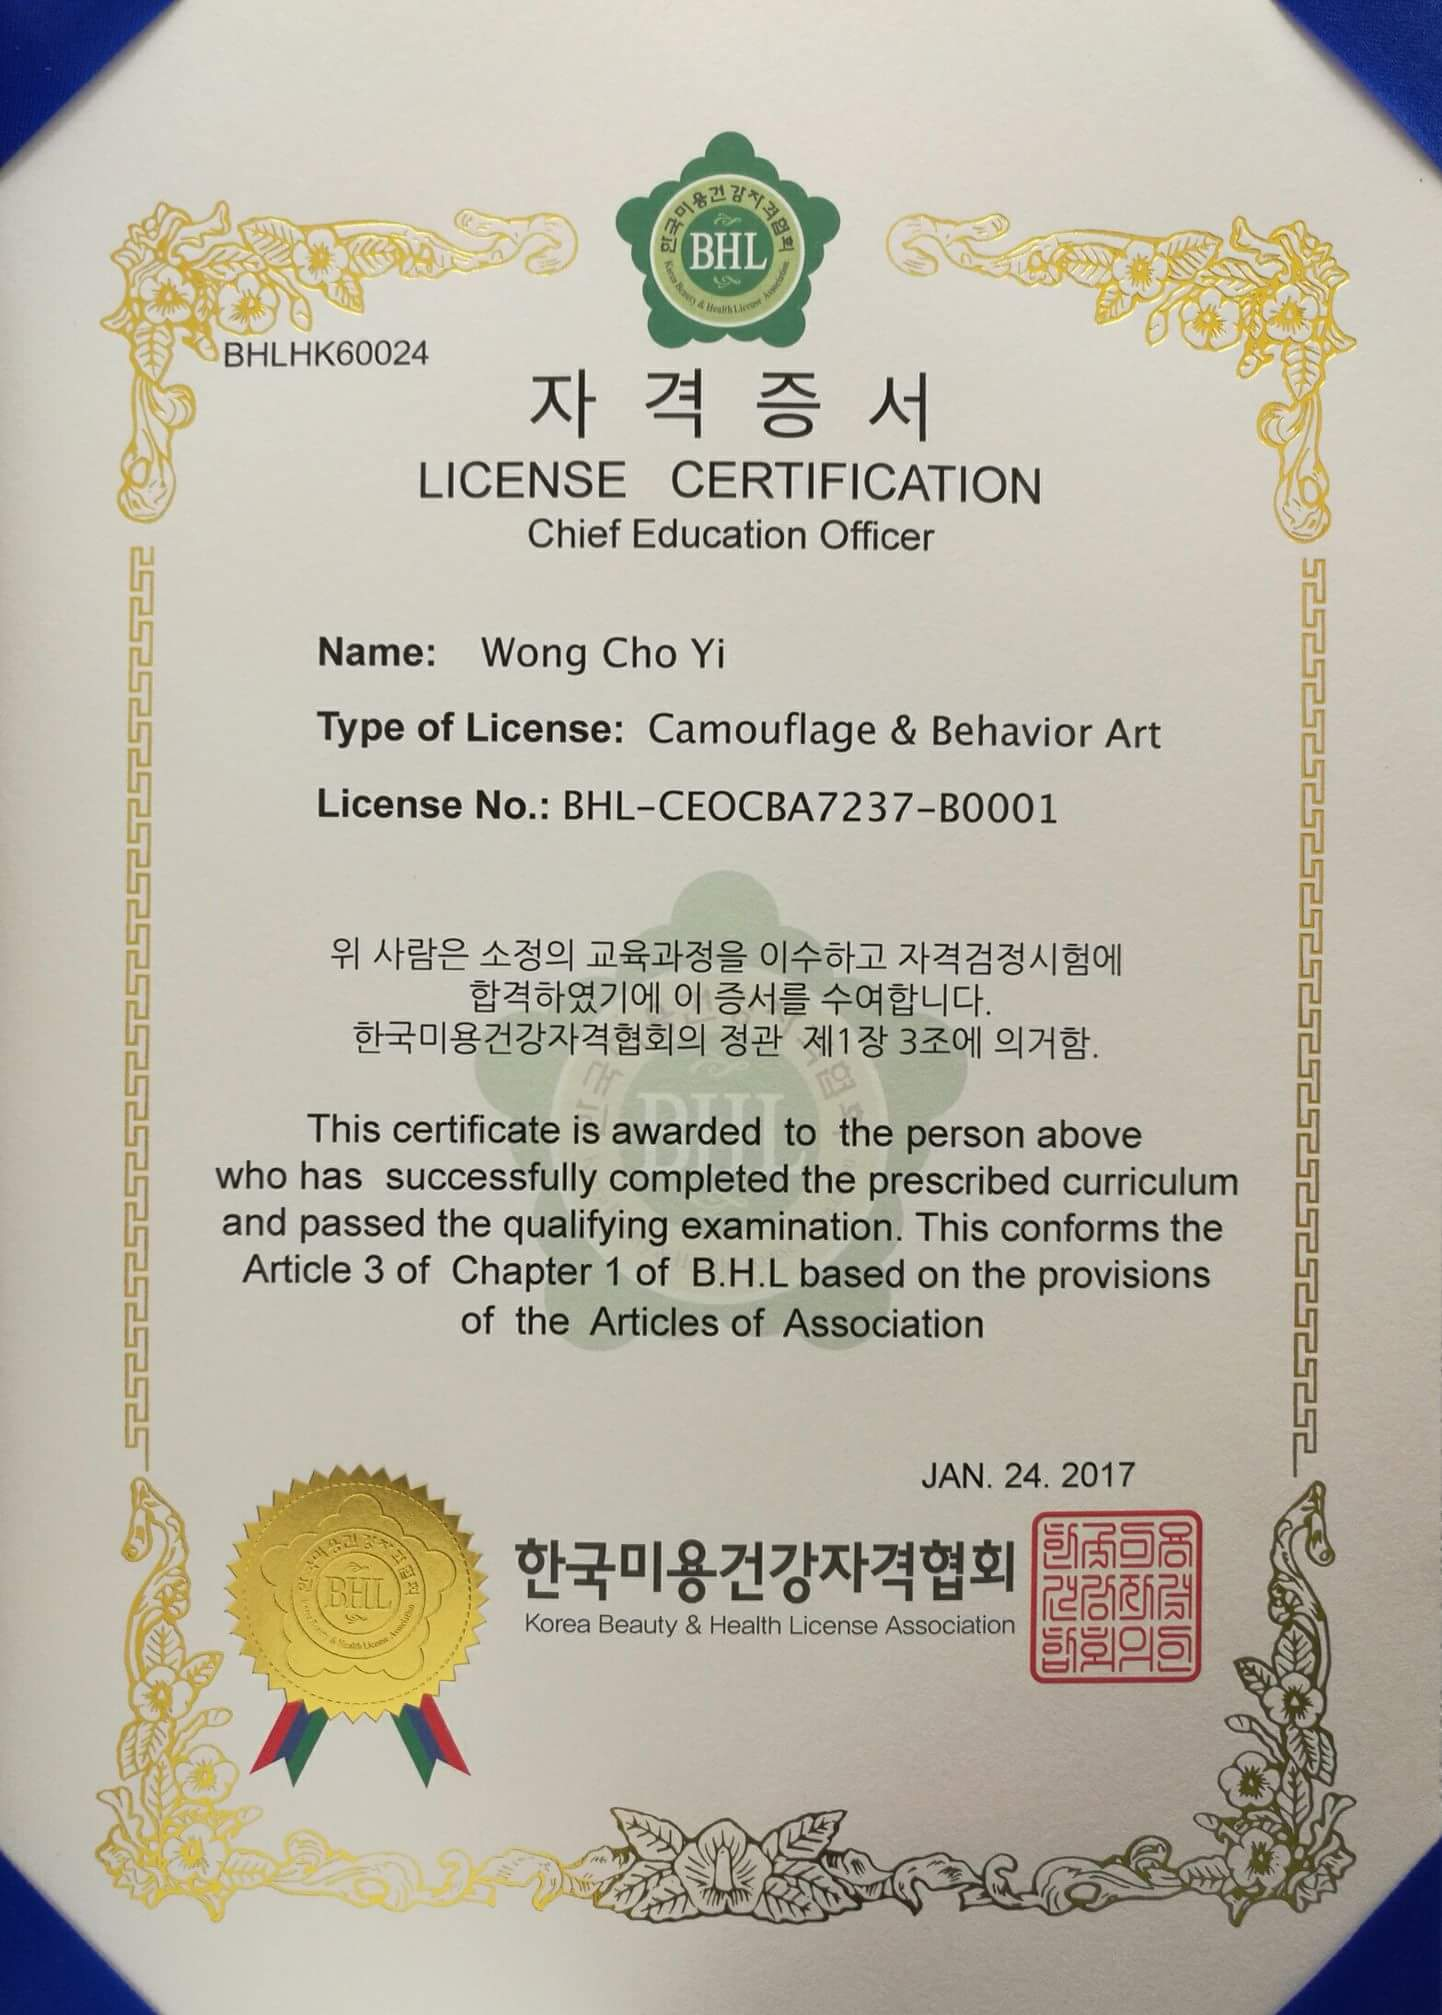 Korea IHOOC BHL IBHGU KOREA Beauty & Health License Association License Certification Chief Education Officer Camouflage & Behavior Art